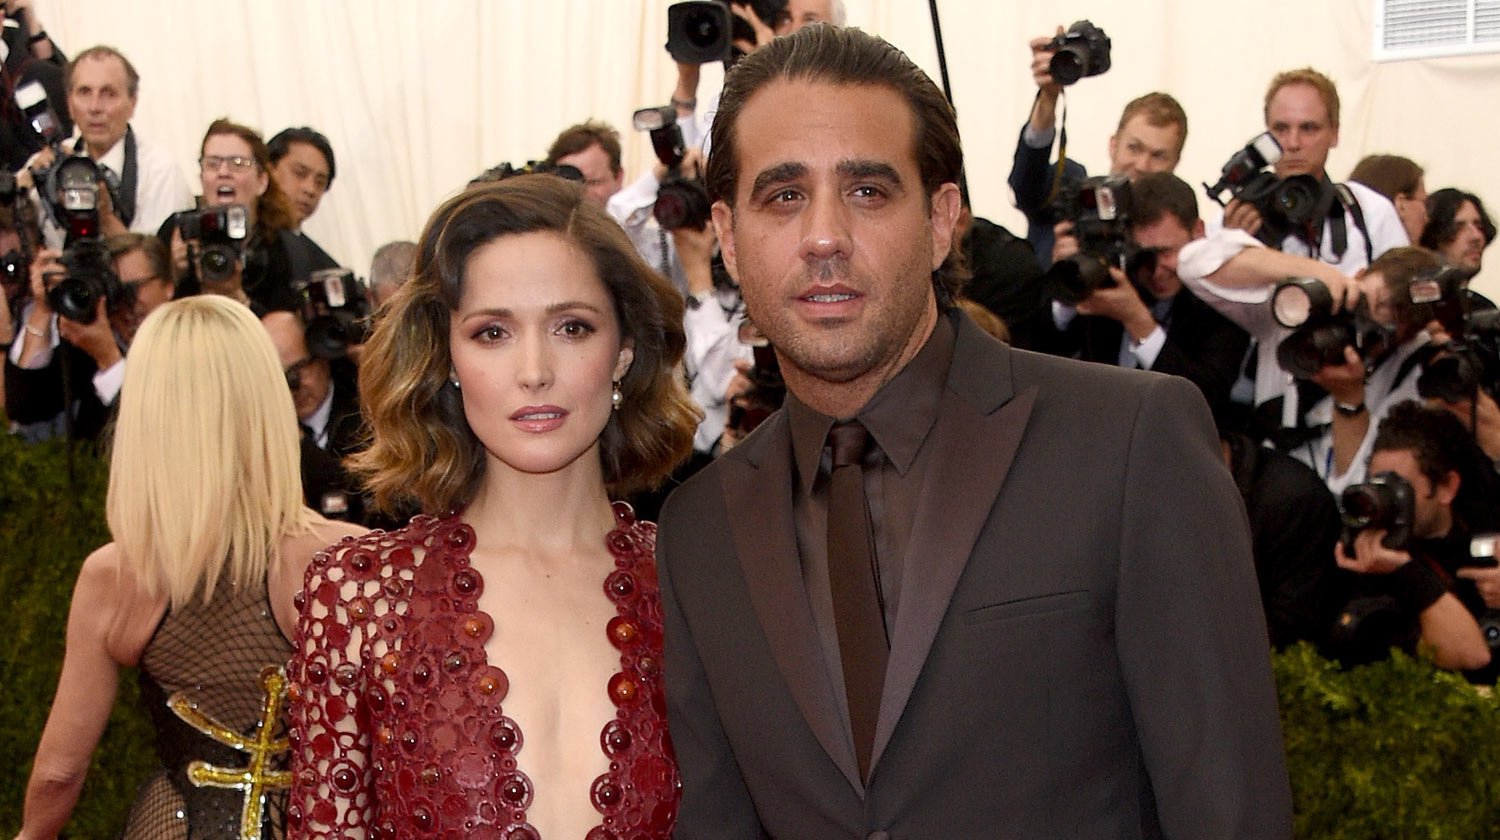 Rose Byrne Has Handsome Arm Candy At Met Gala 2015 2015